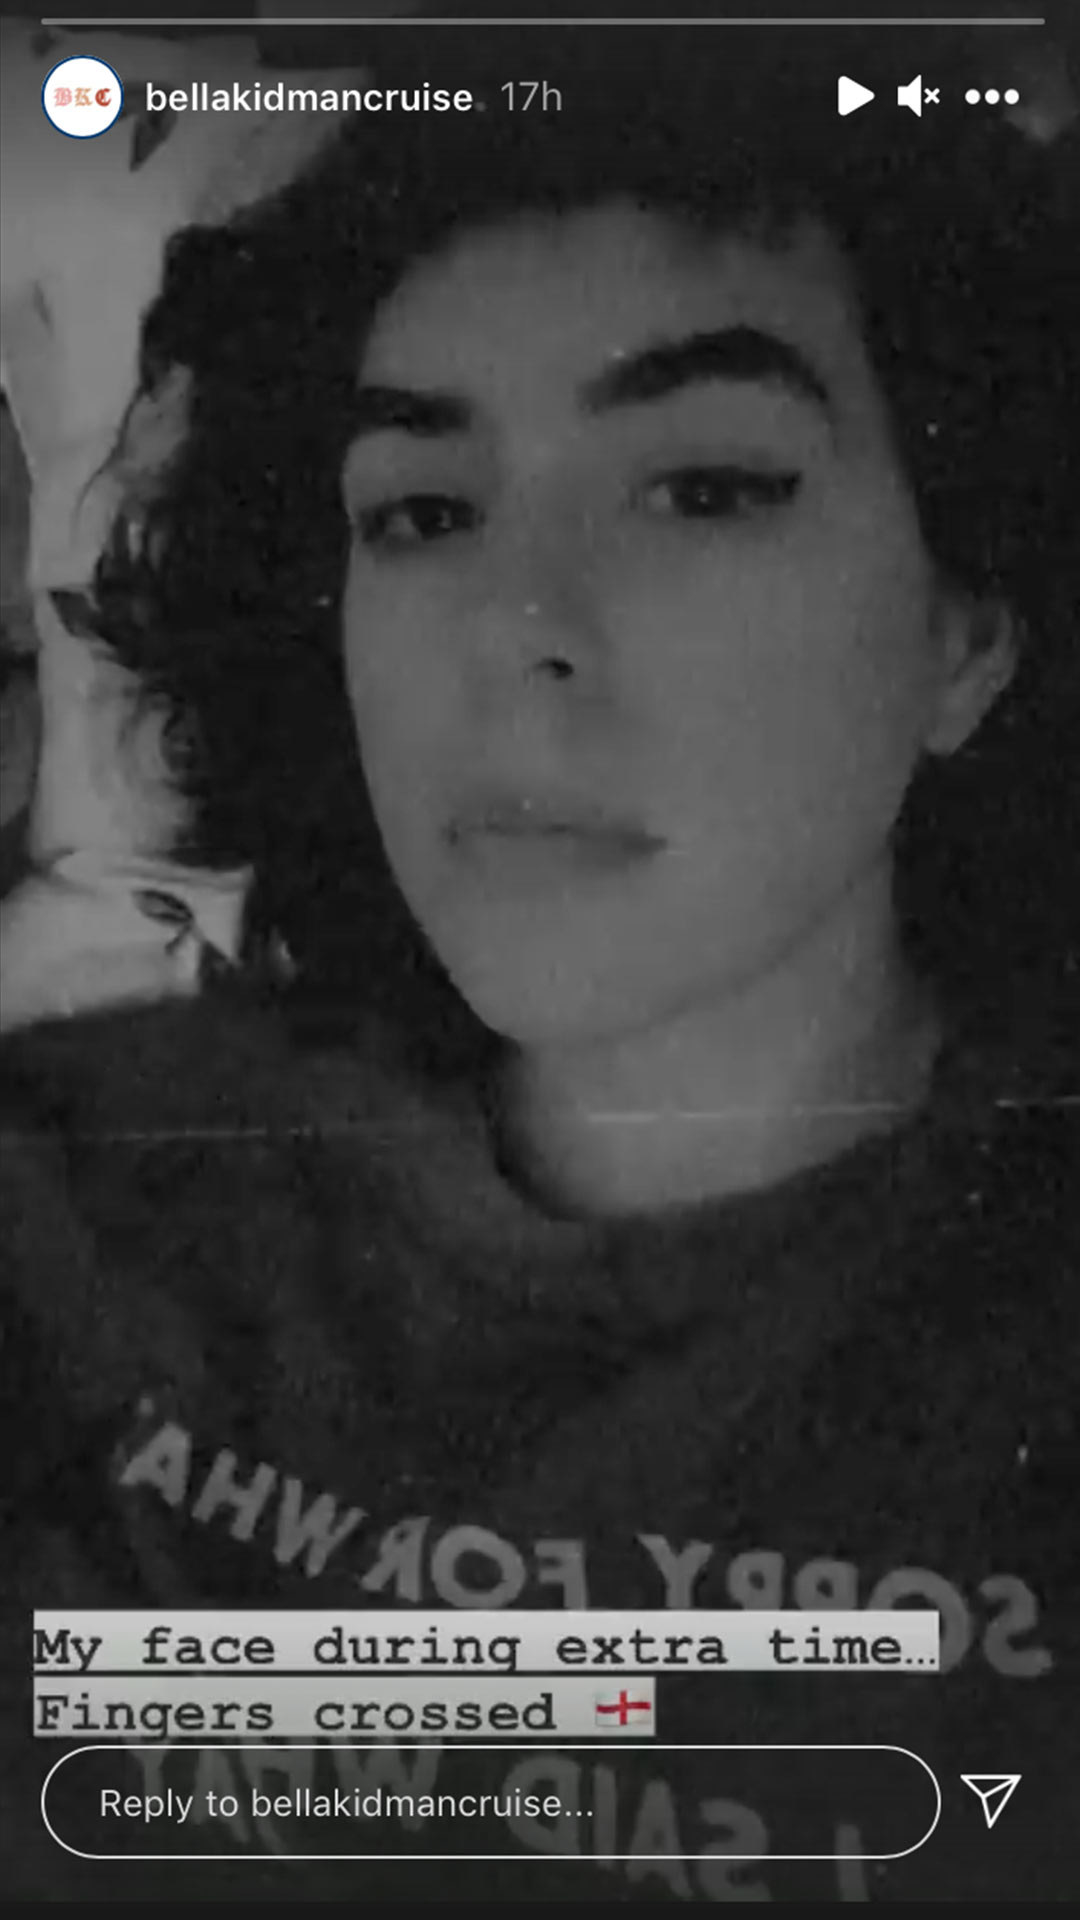 A black and white selfie of Bella with wavy dark hair